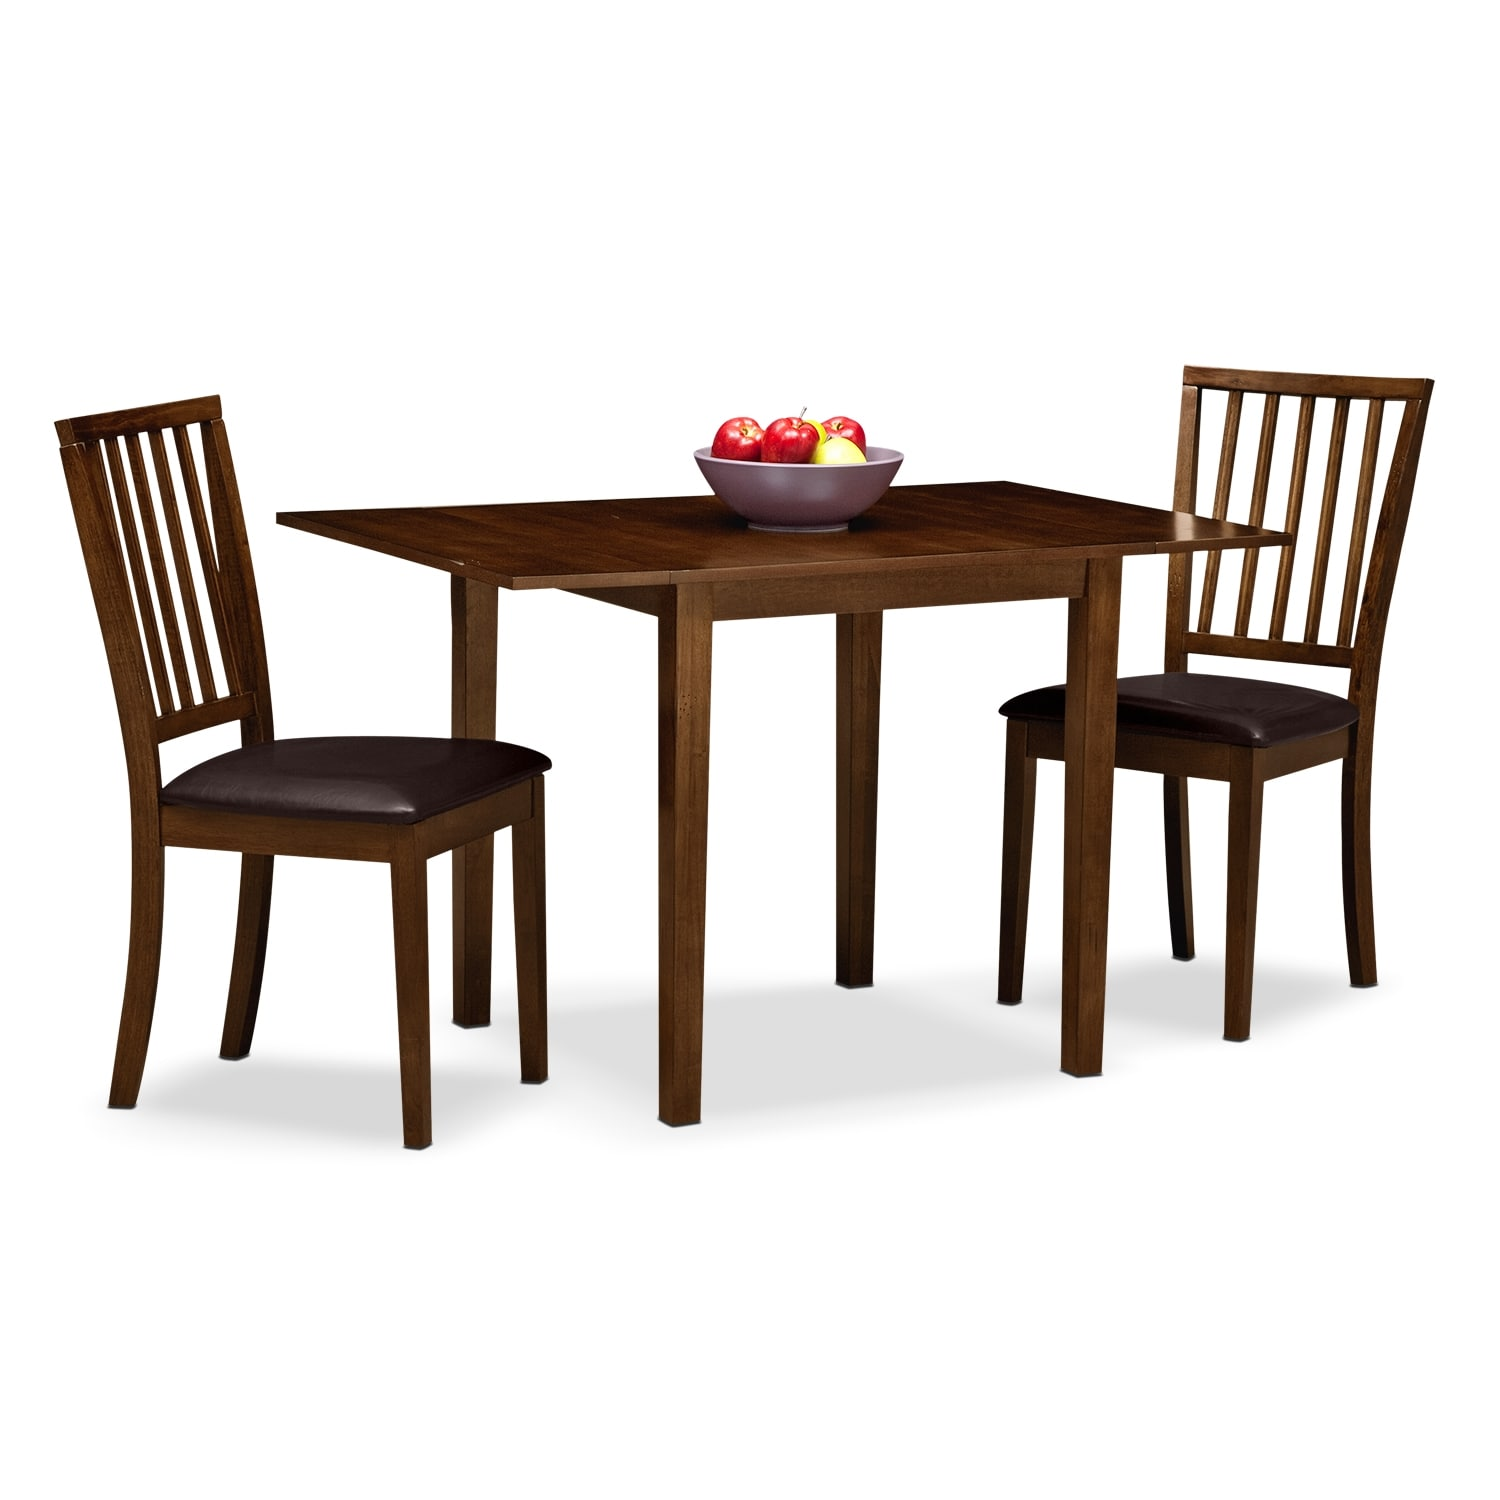 Coming soon for 3 pc dining room set